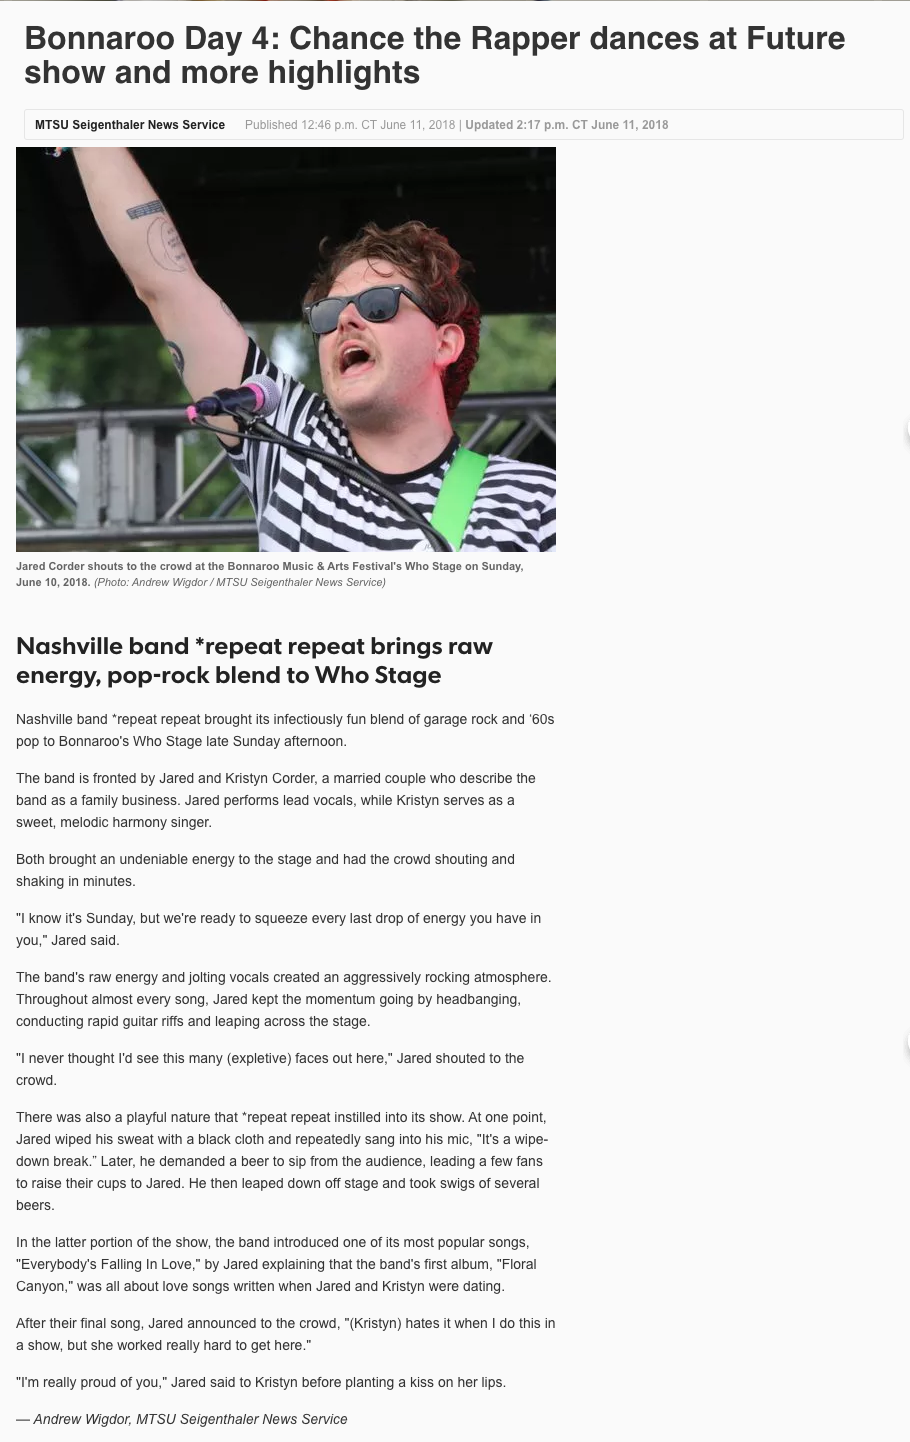 Tennessean clip2 - Bonnaroo Day 4  Chance the Rapper dances at Future show and more highlights.png